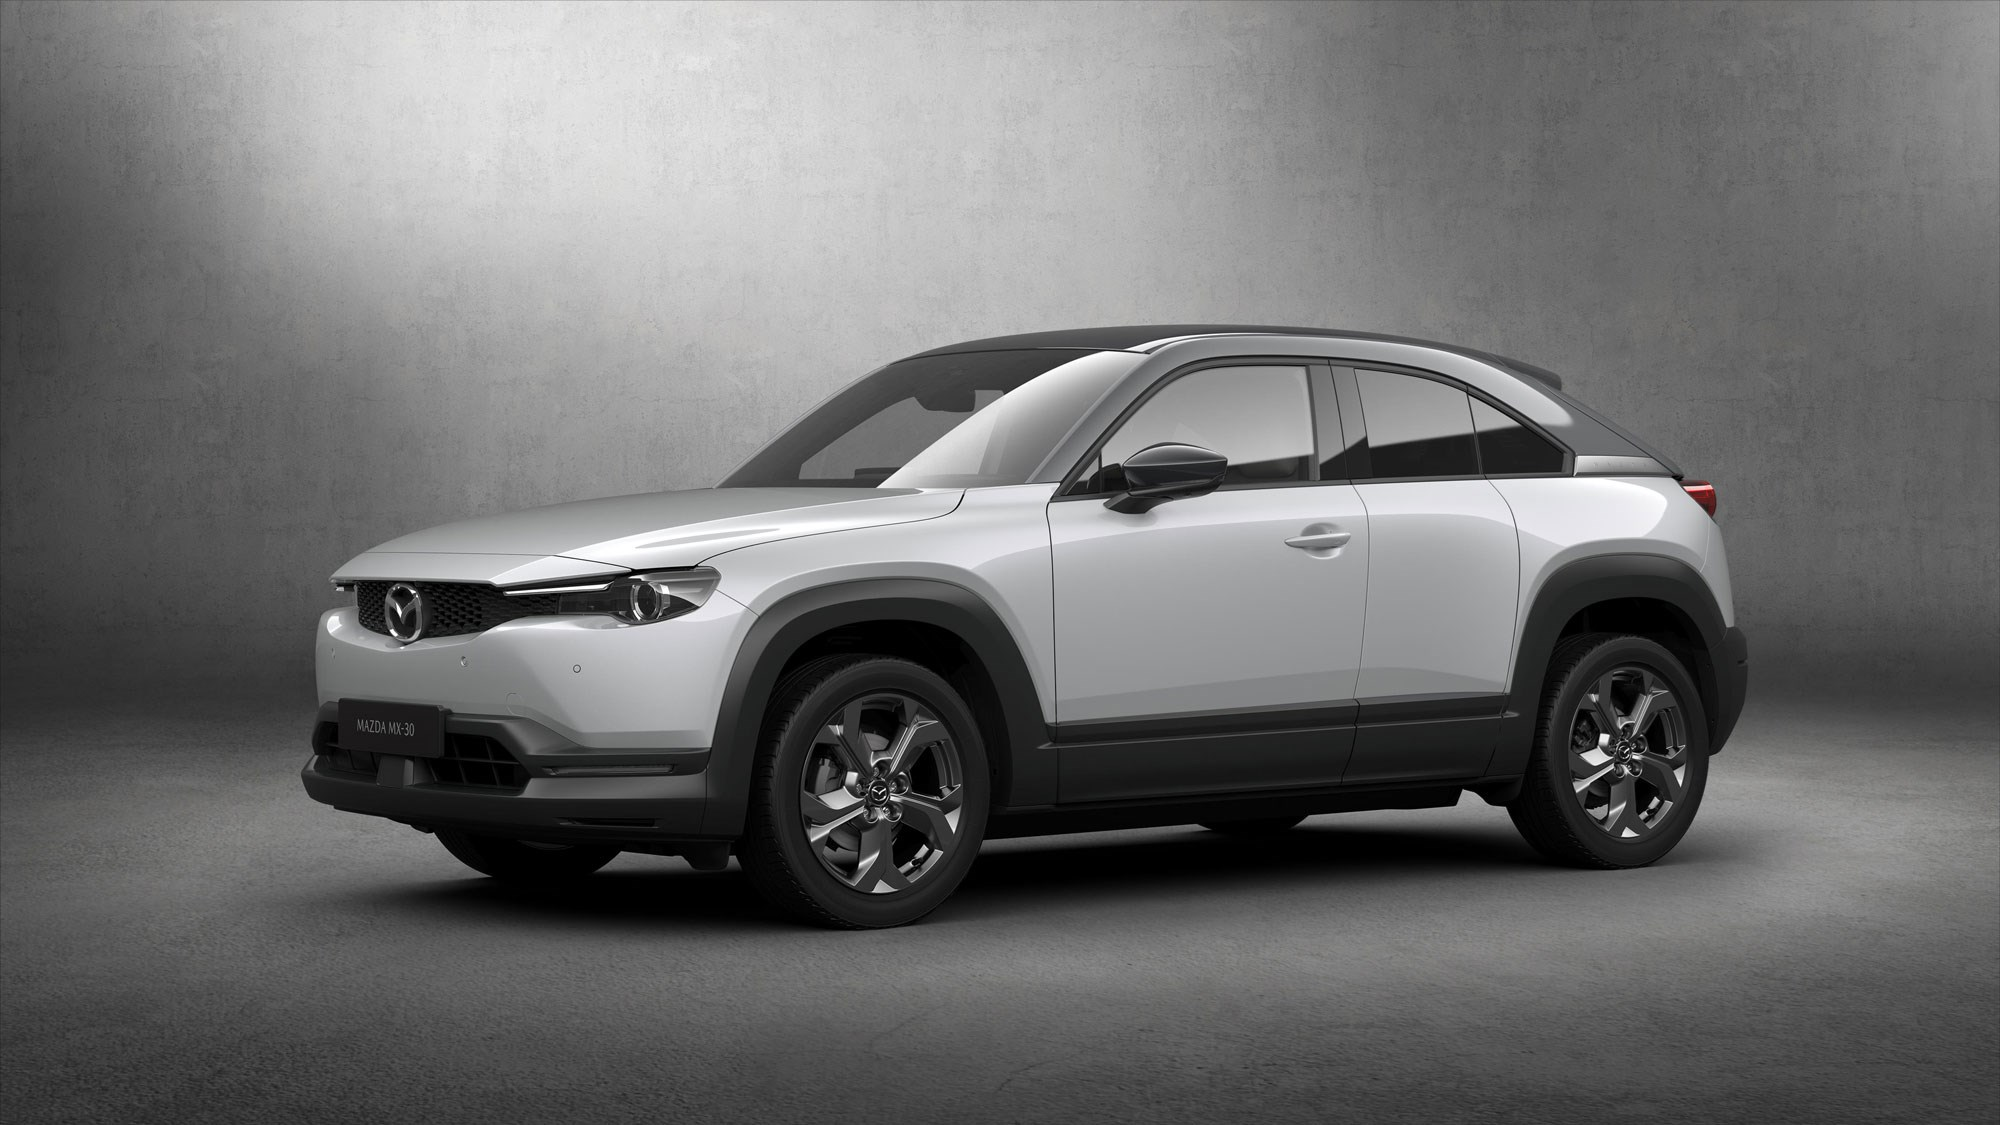 Mazda goes electric with MX-30 crossover